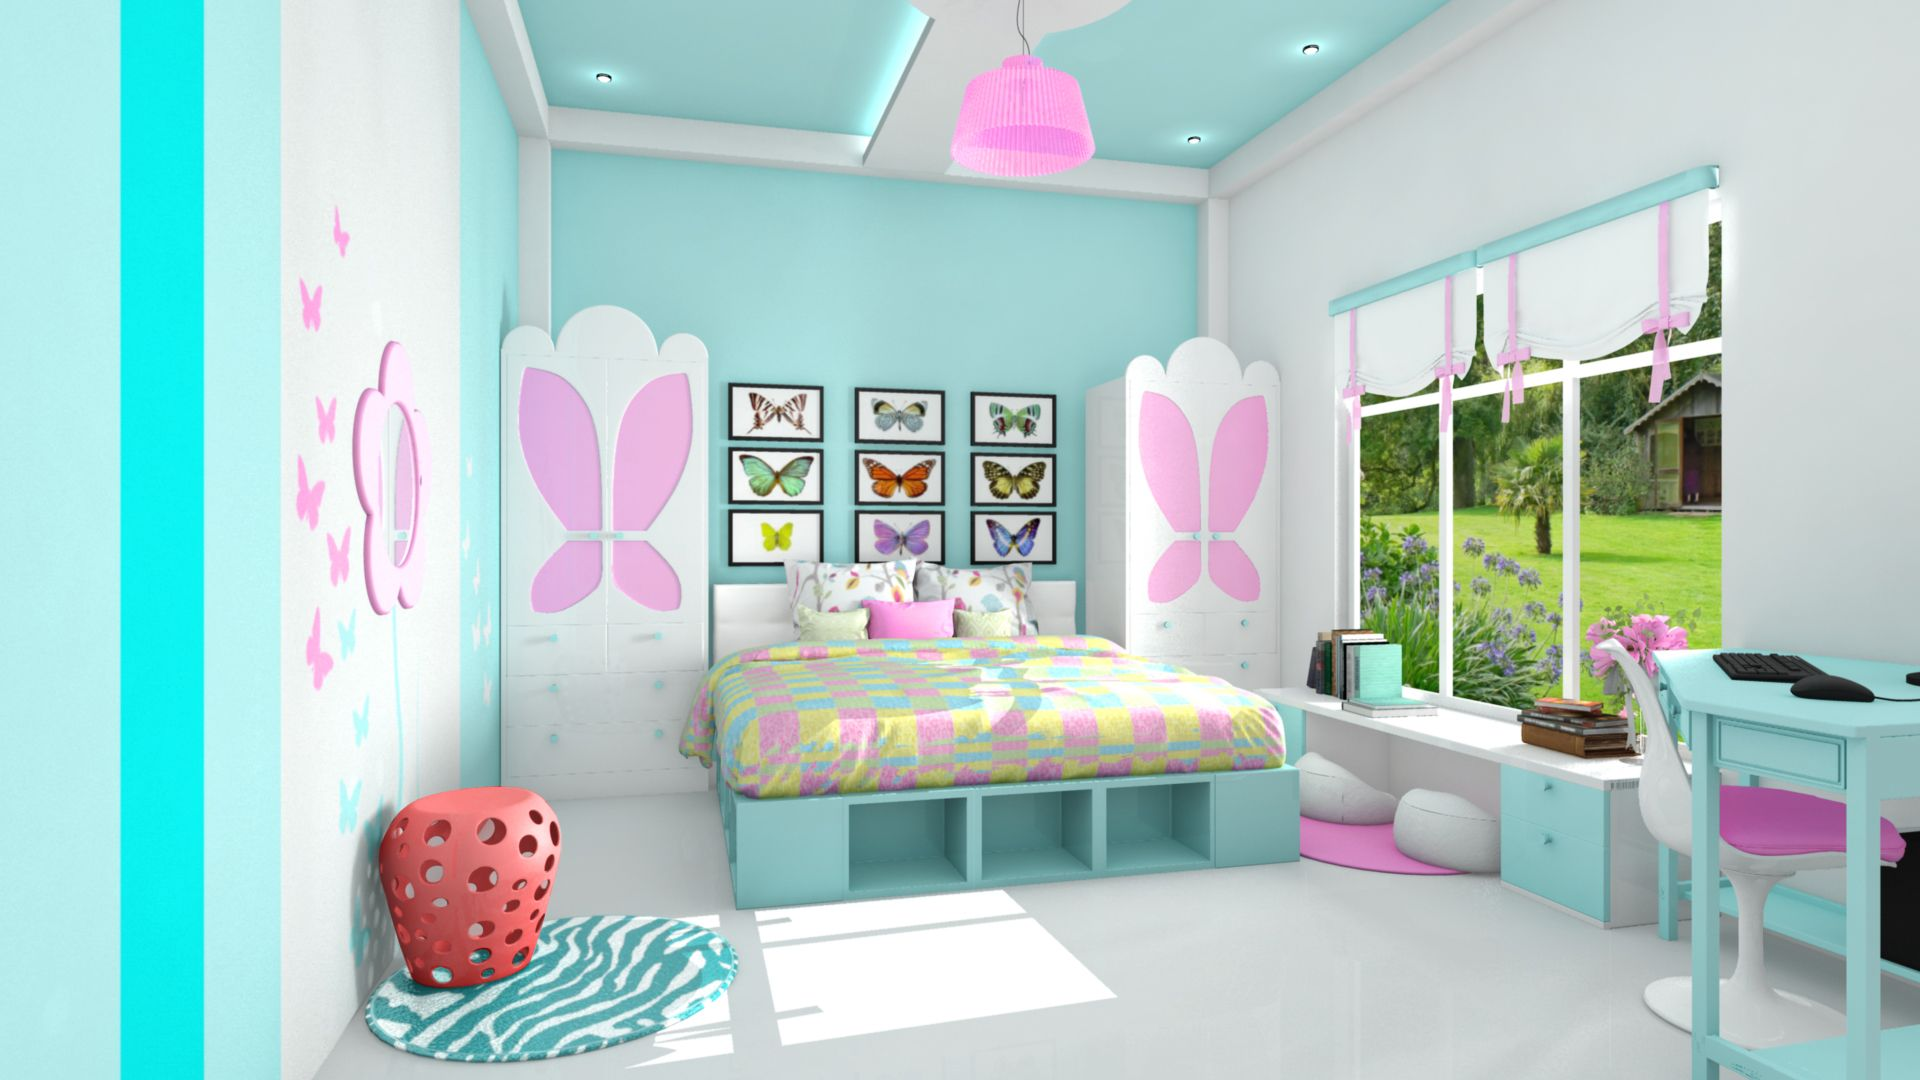 Ten yirs olde bed rooms design young girl bedroom for Bedroom ideas for girls